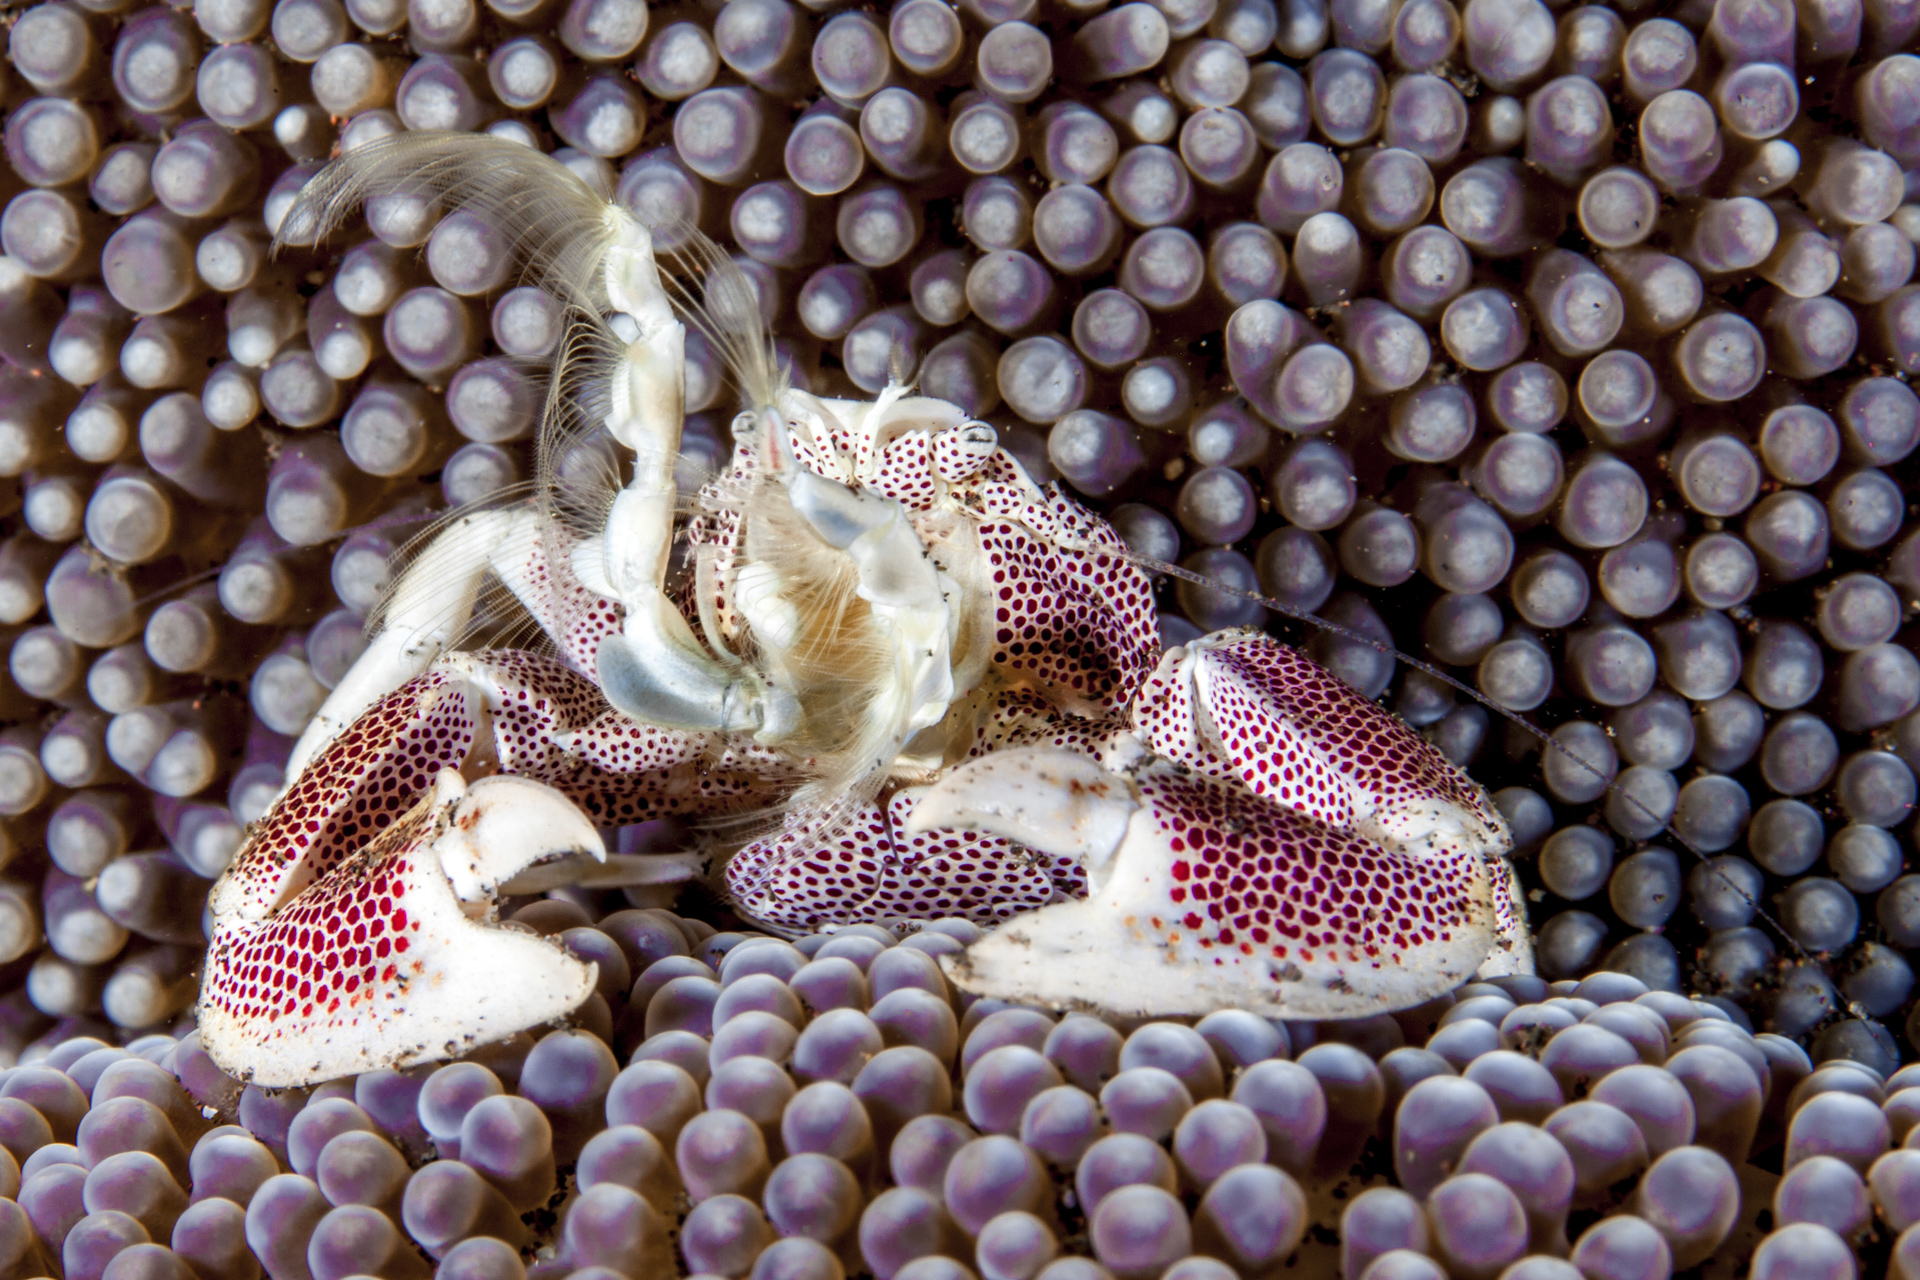 PORCELAIN crab, andaman islands Credit: David P. Robinson / coral reef image bank